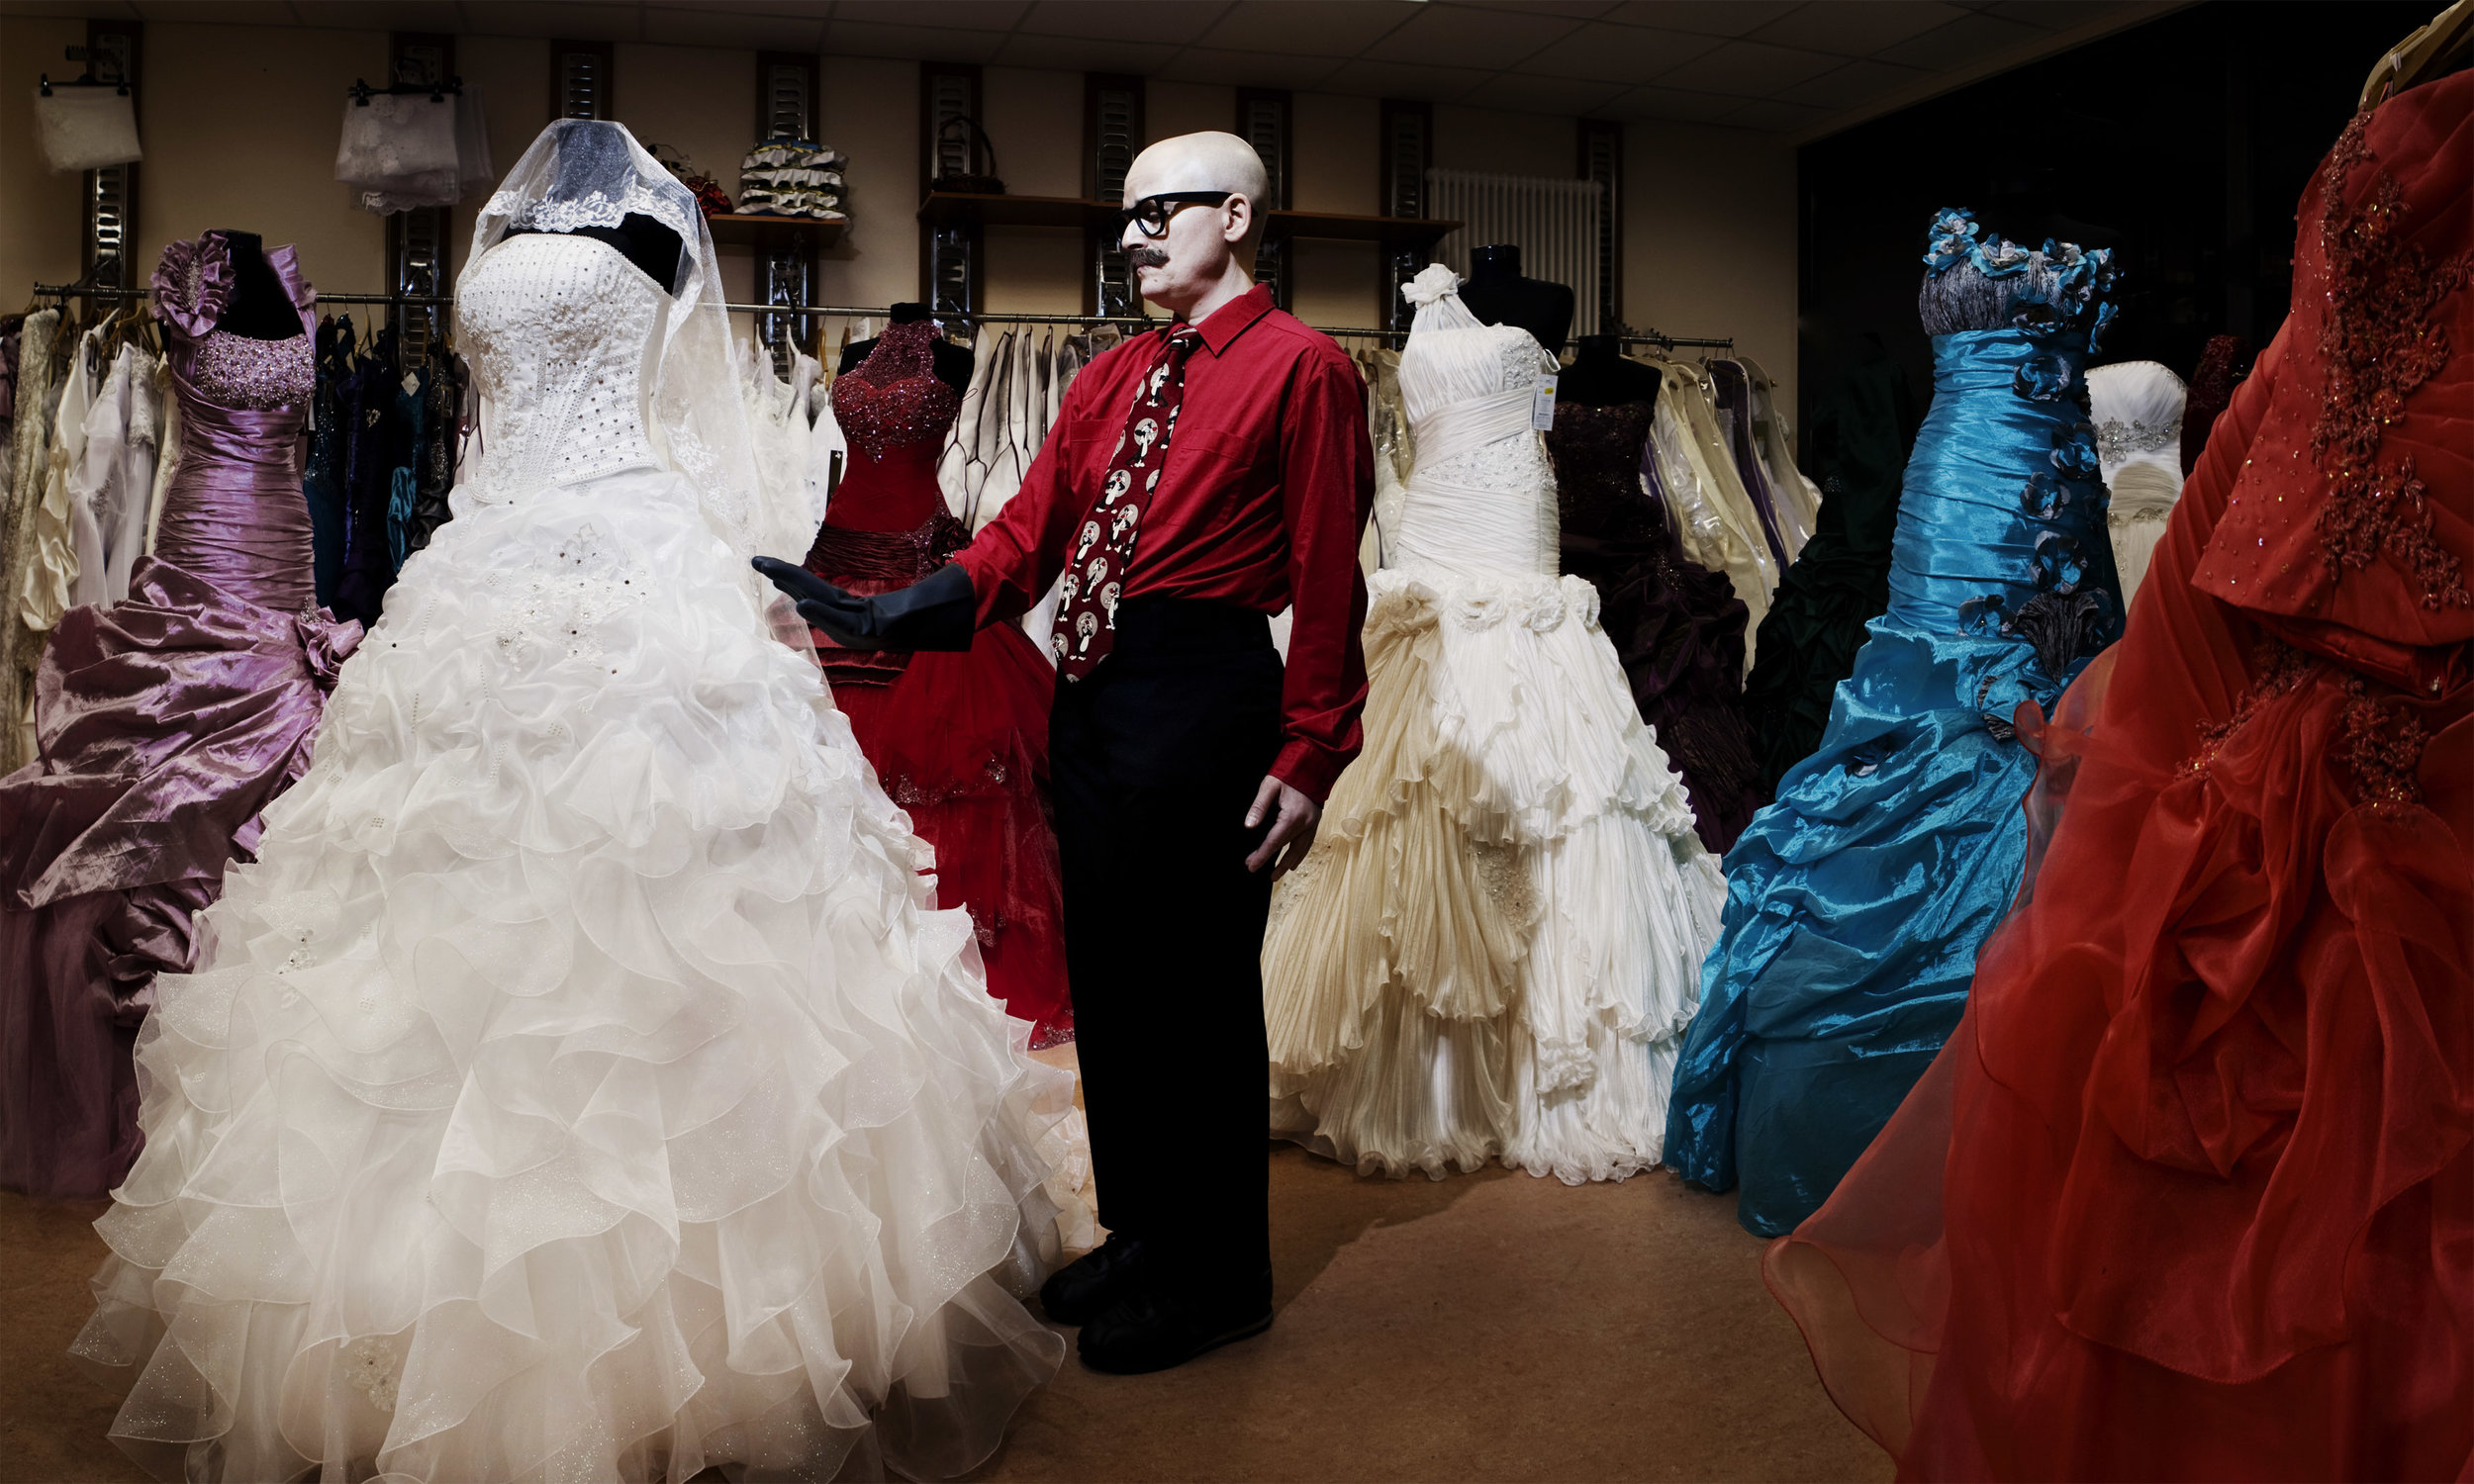 Markland (a slight, bald figure with fake moustache and glasses) stands in a room full of ball gowns. (photo: Sven Hagolani)